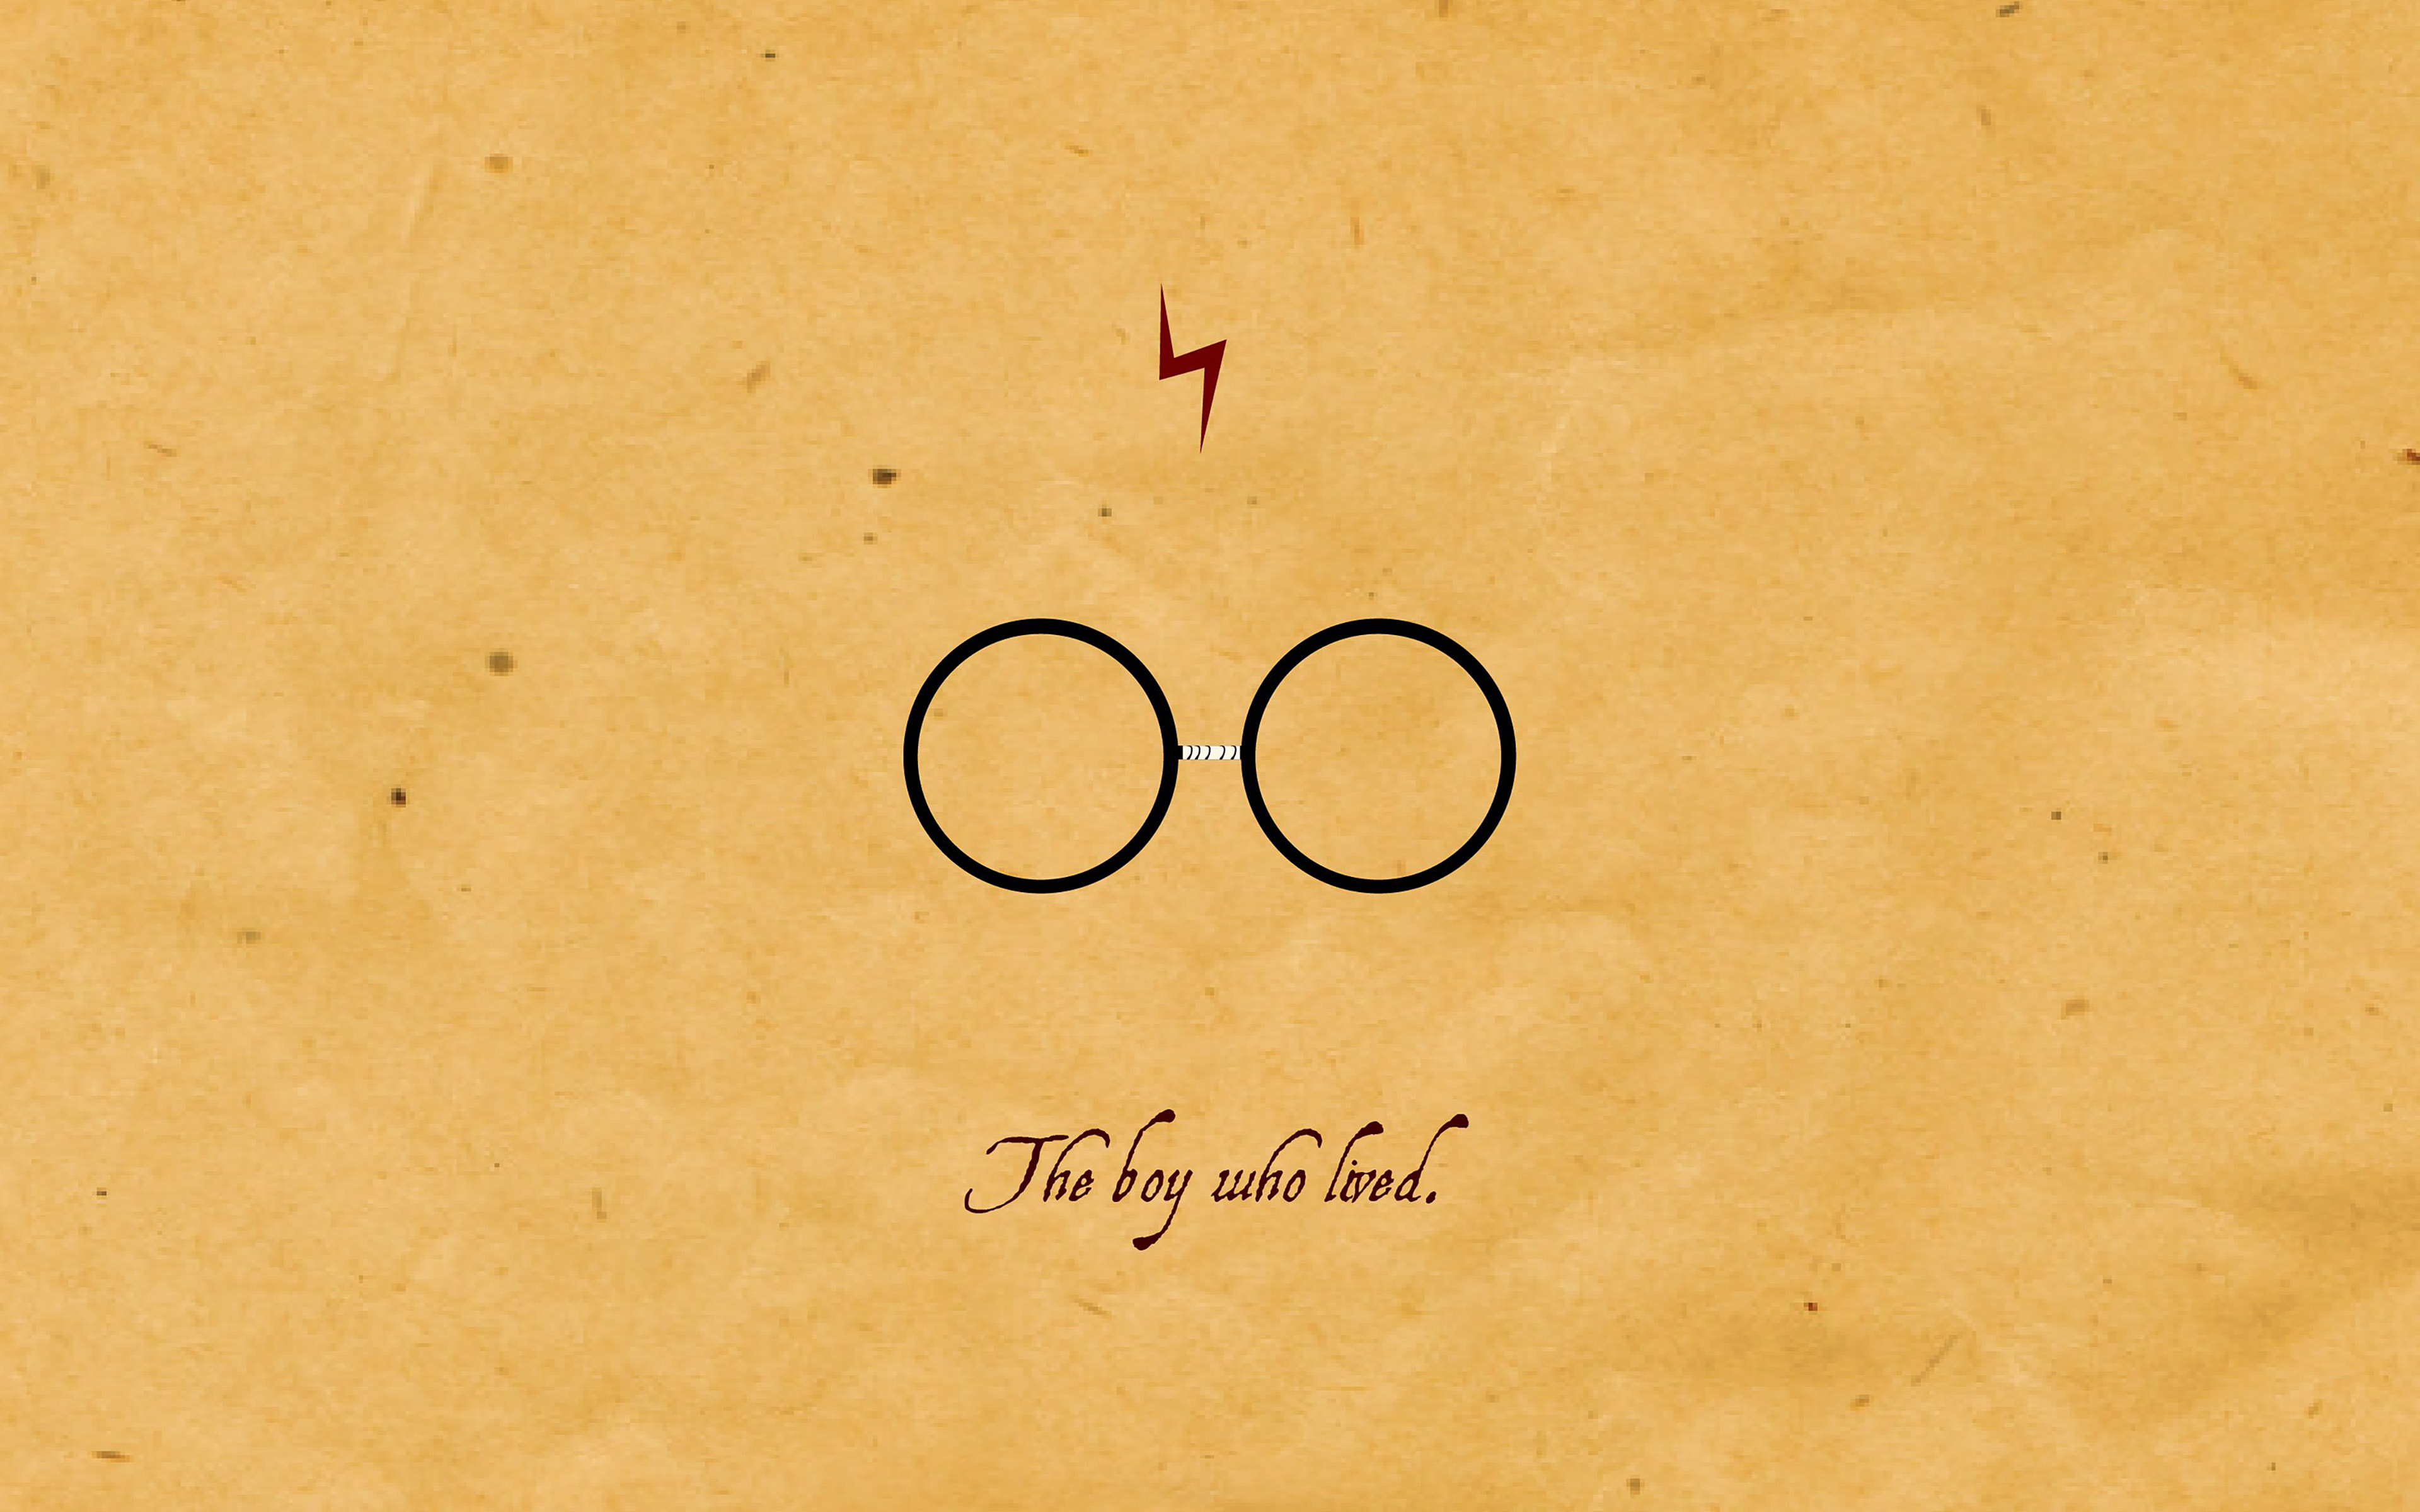 Hogwarts Iphone Wallpaper Ad56 Harry Potter Quote Film Papers Co